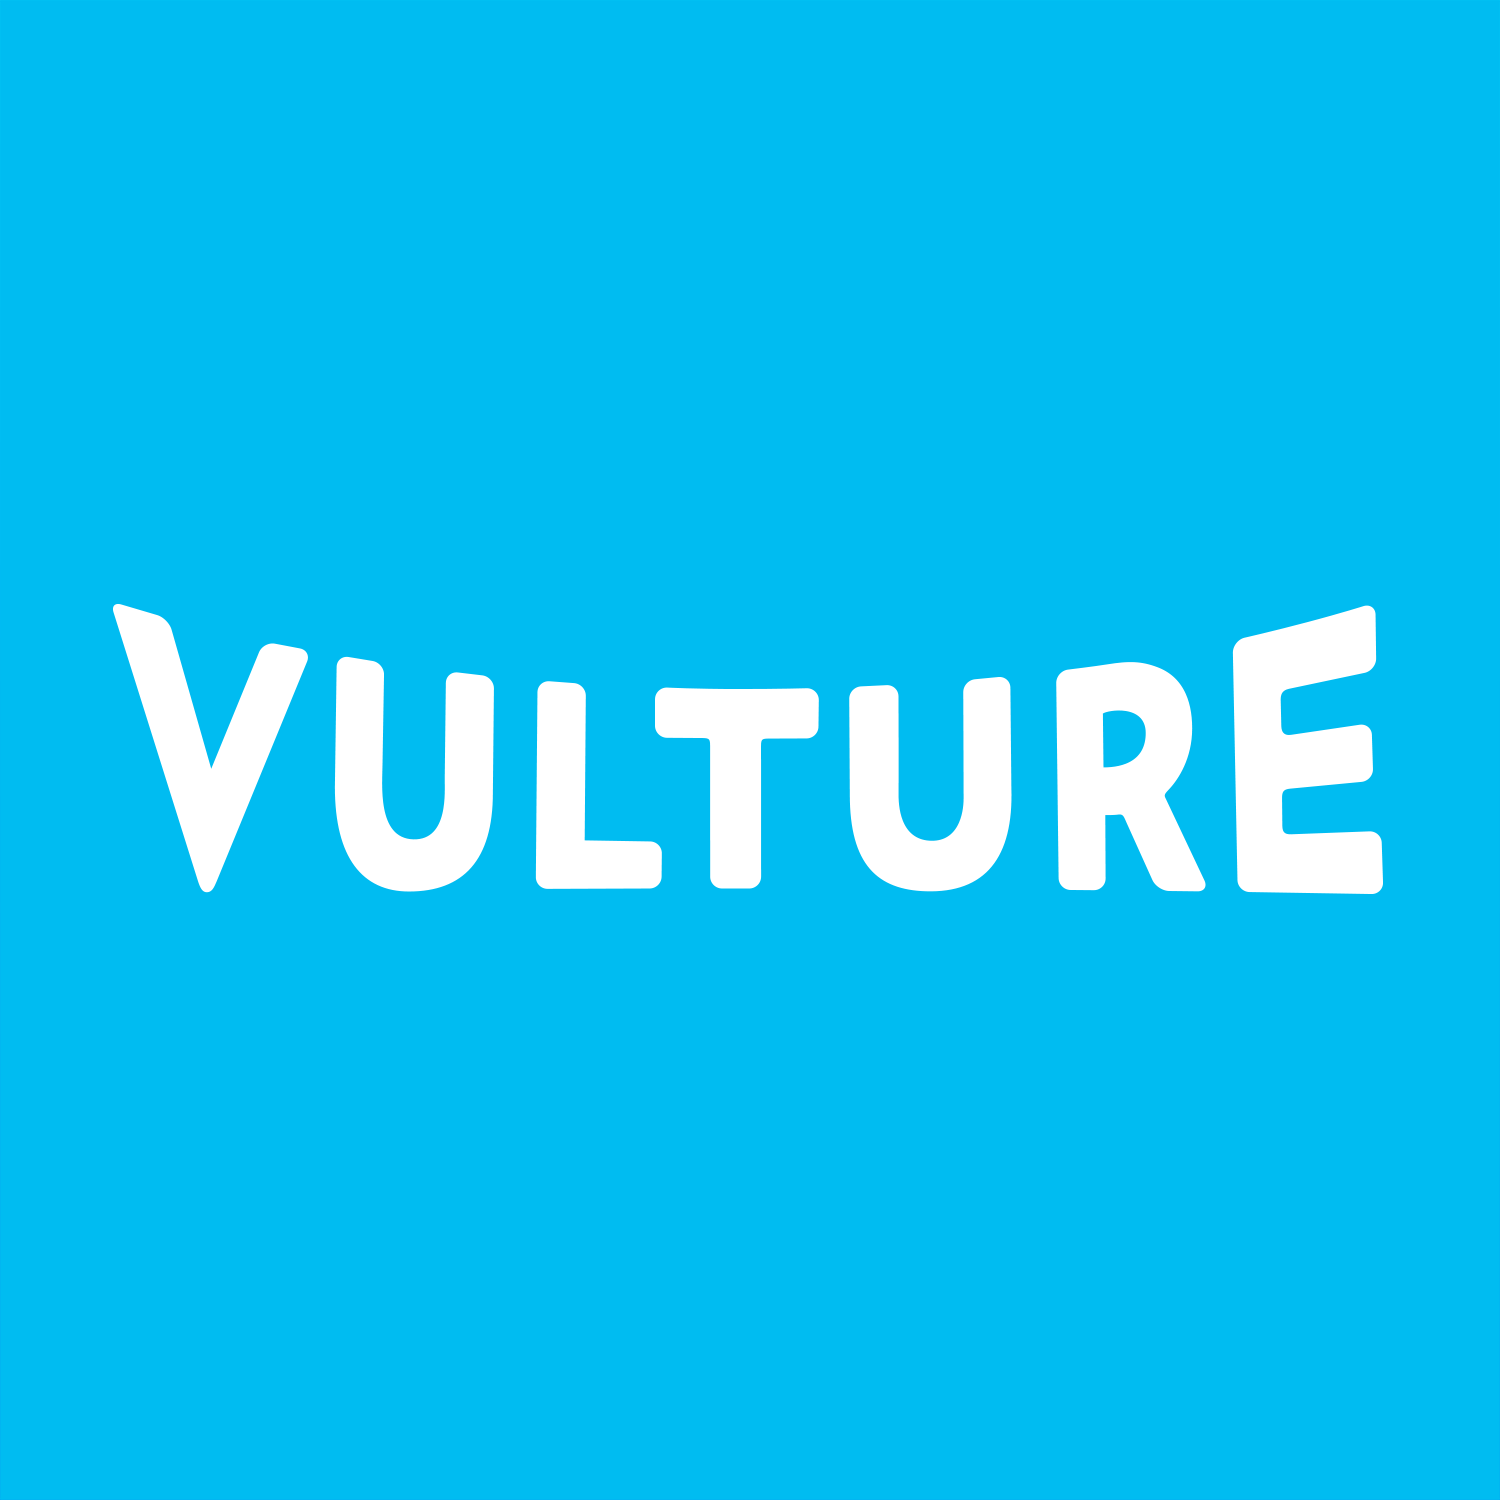 Vulture - Entertainment News - TV, Movies, Music, Books